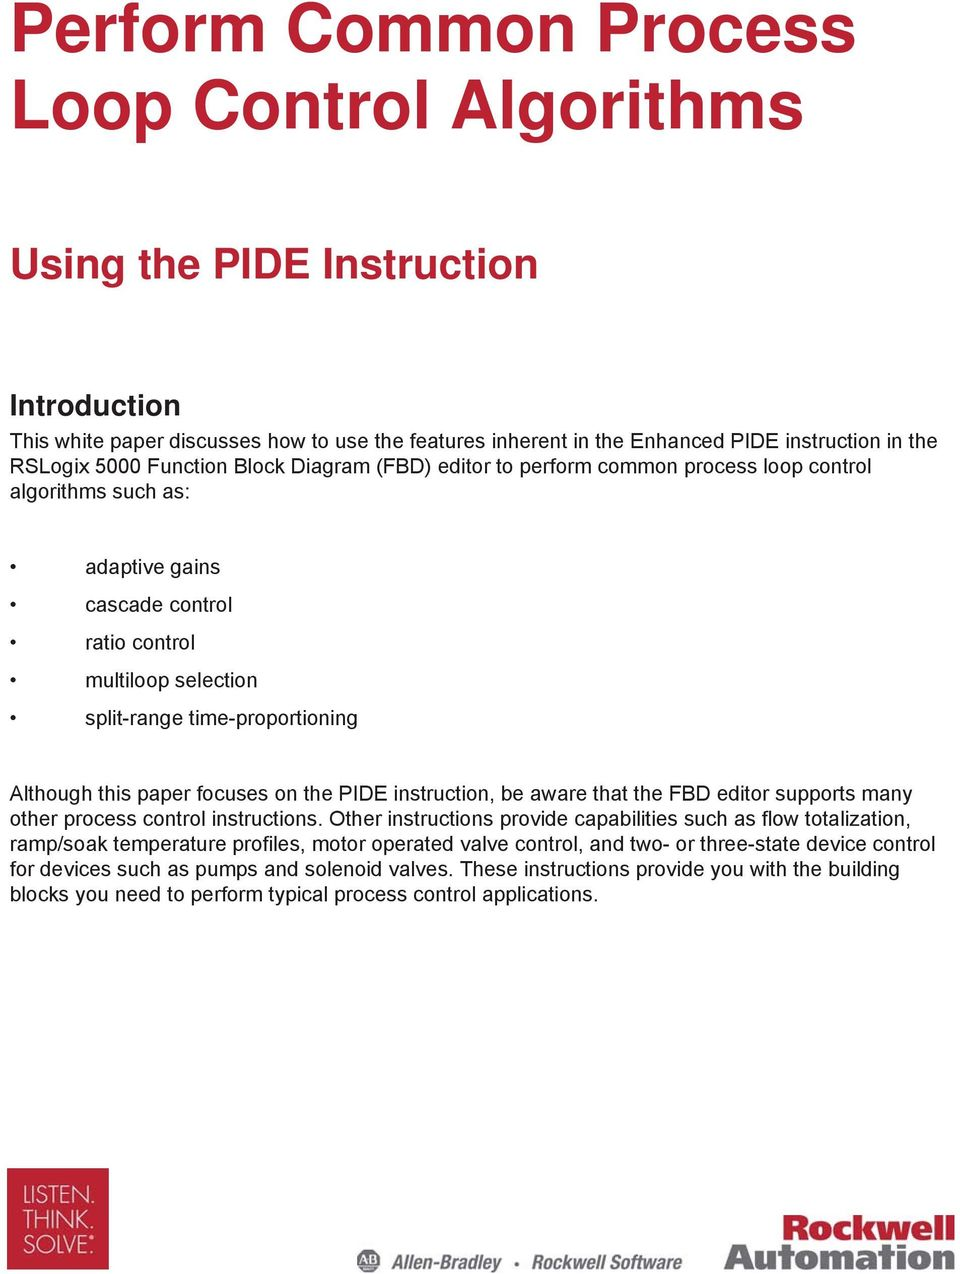 Perform common process loop control algorithms pdf this paper focuses on the pide instruction be aware that the fbd editor supports many ccuart Choice Image